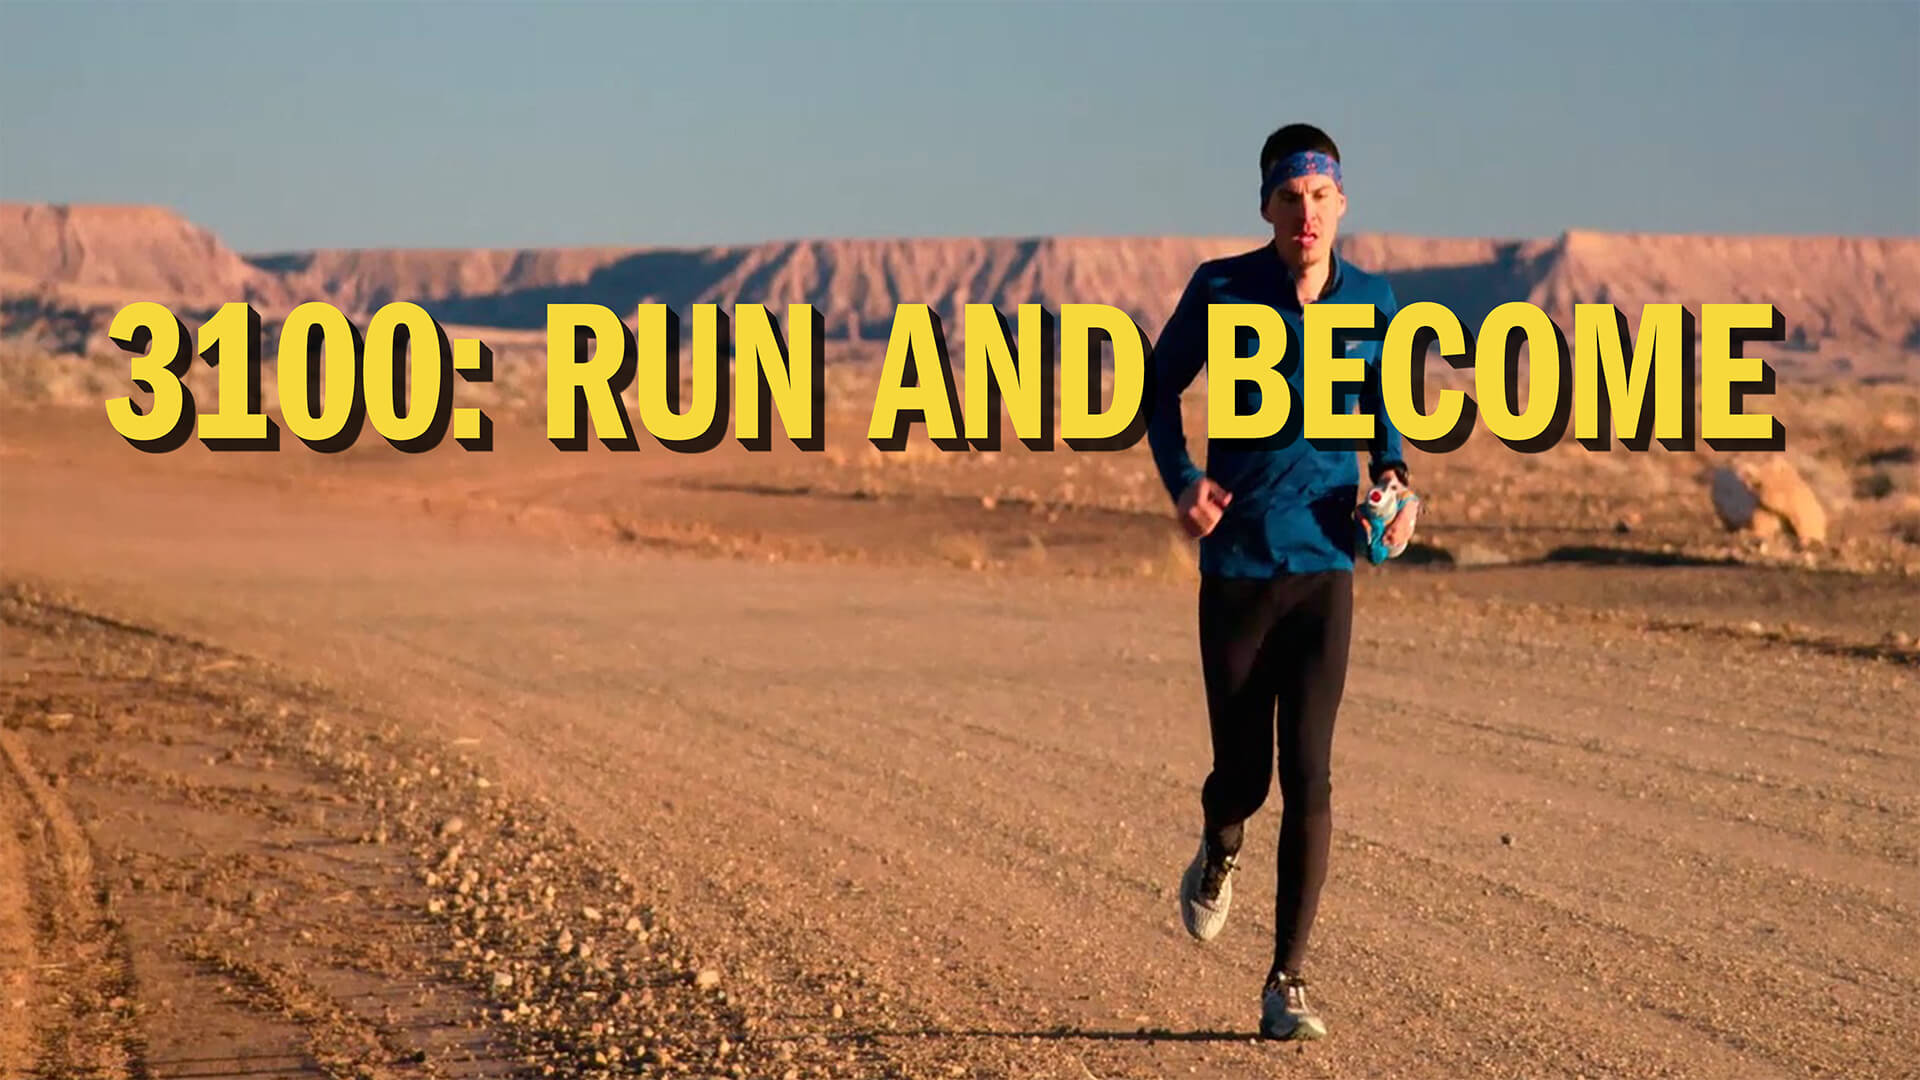 3100: Run and Become - The Film3100: Run and Become | A Film by